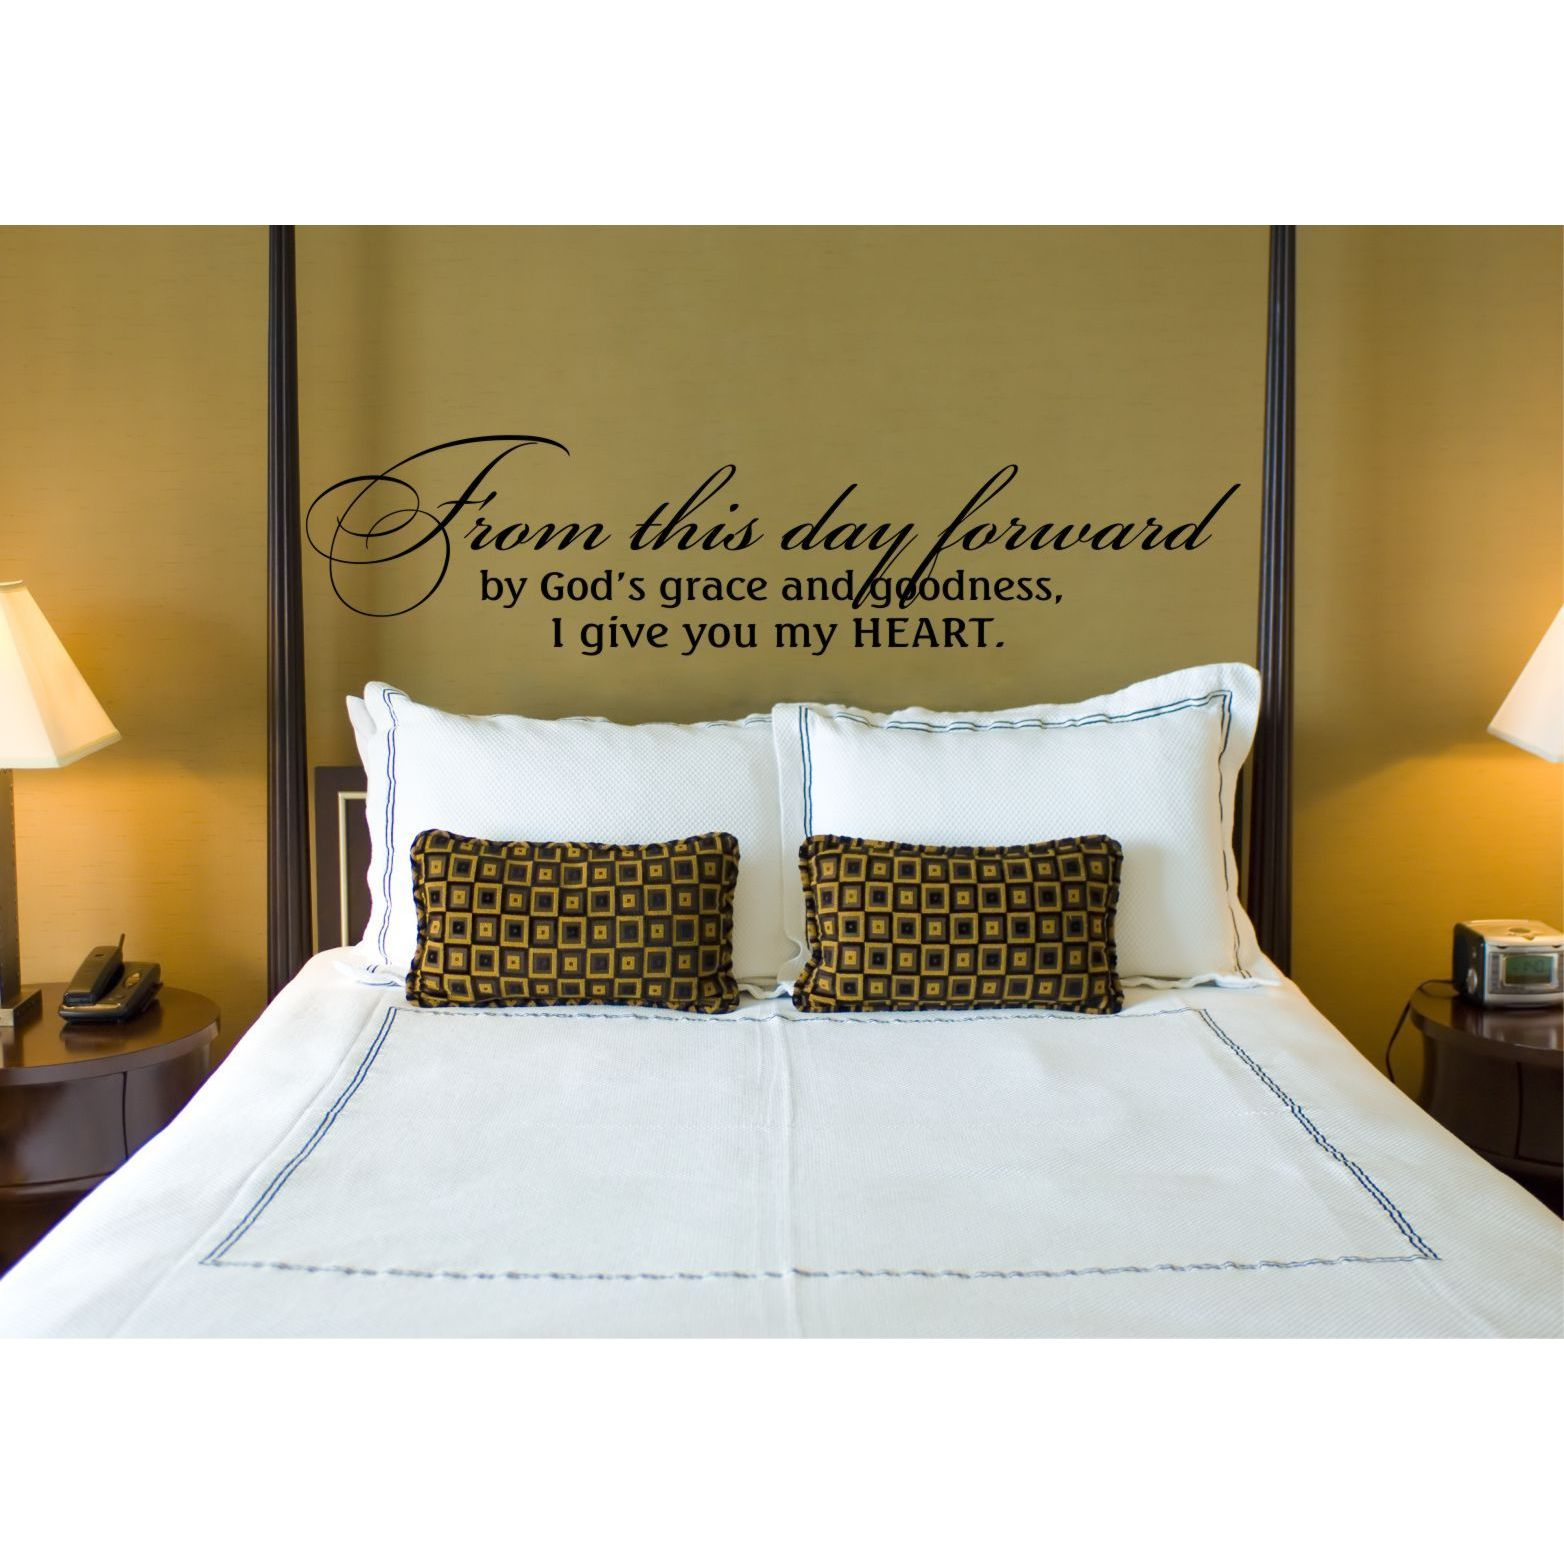 Everything Vinyl Decor From this day forward Vinyl Wall Art